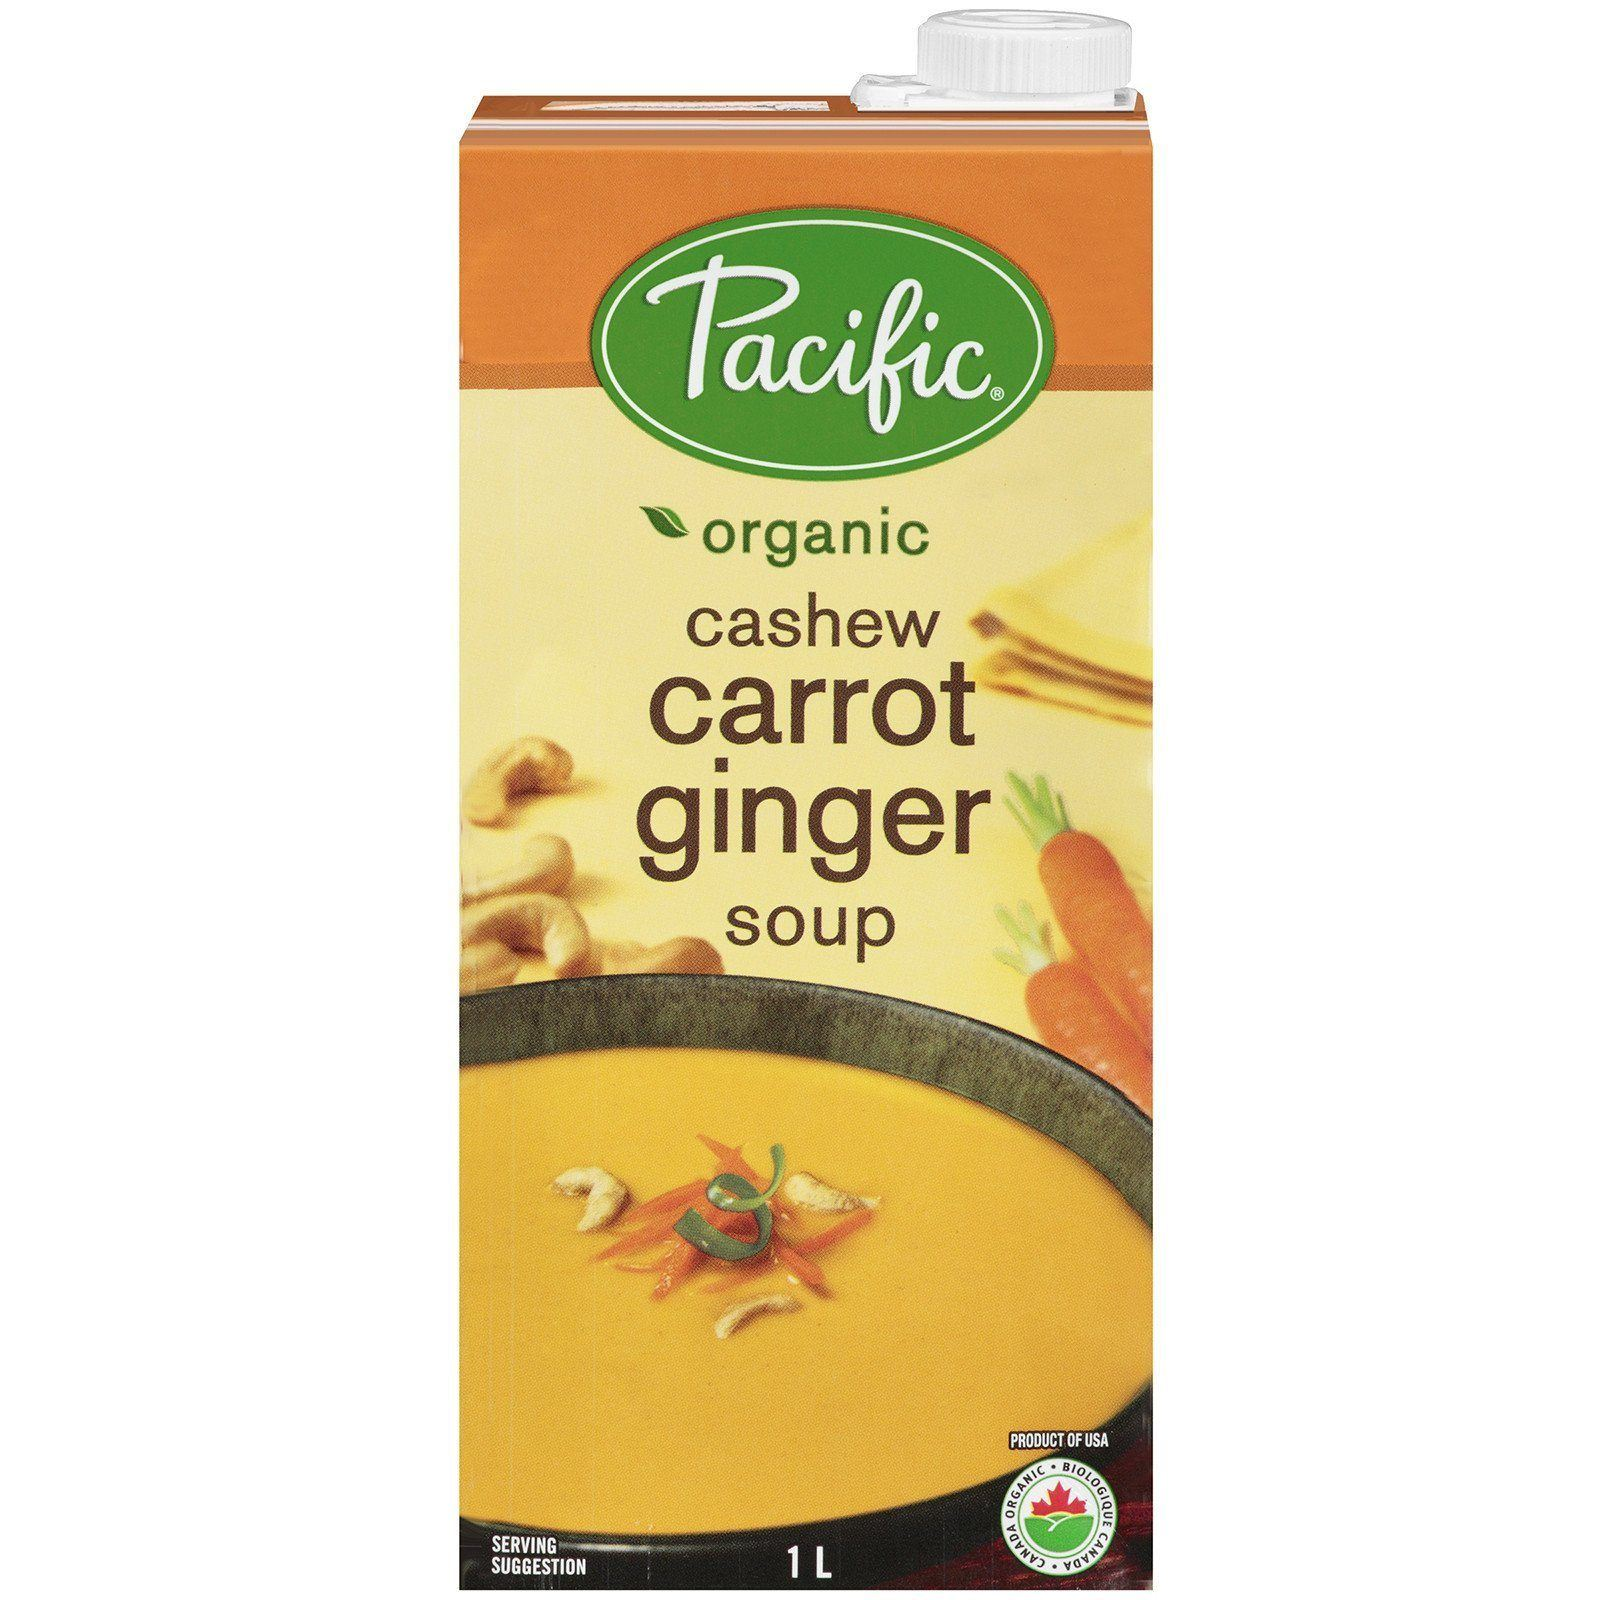 Food & Drink - Pacific - Organic Cashew Carrot Ginger Soup, 1L